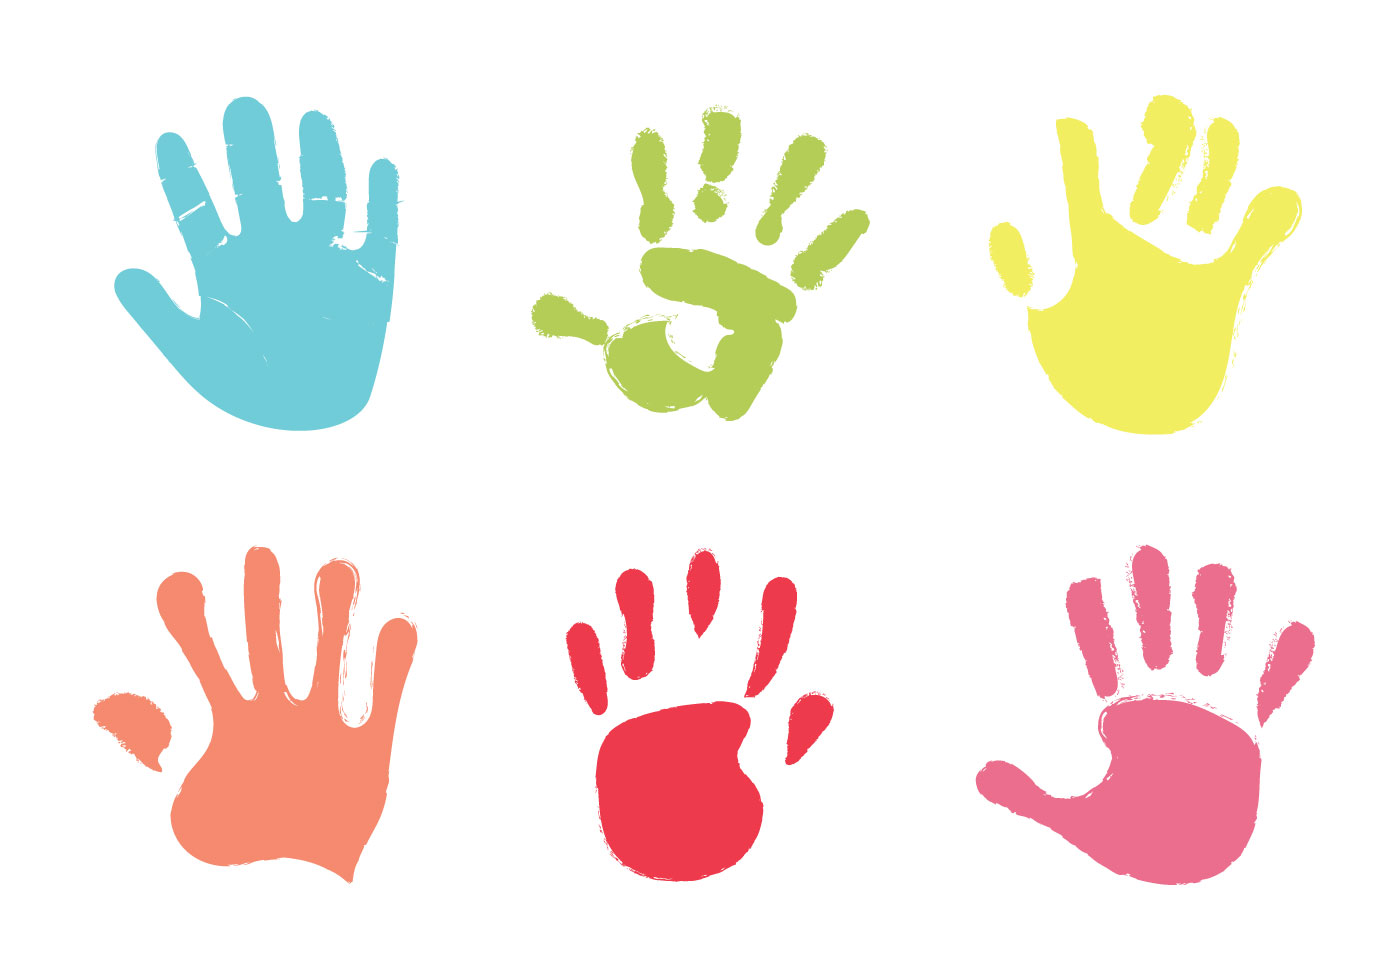 free baby hand print vector illustration download free vector art  stock graphics   images leopard clip art black and white leopard clip art border